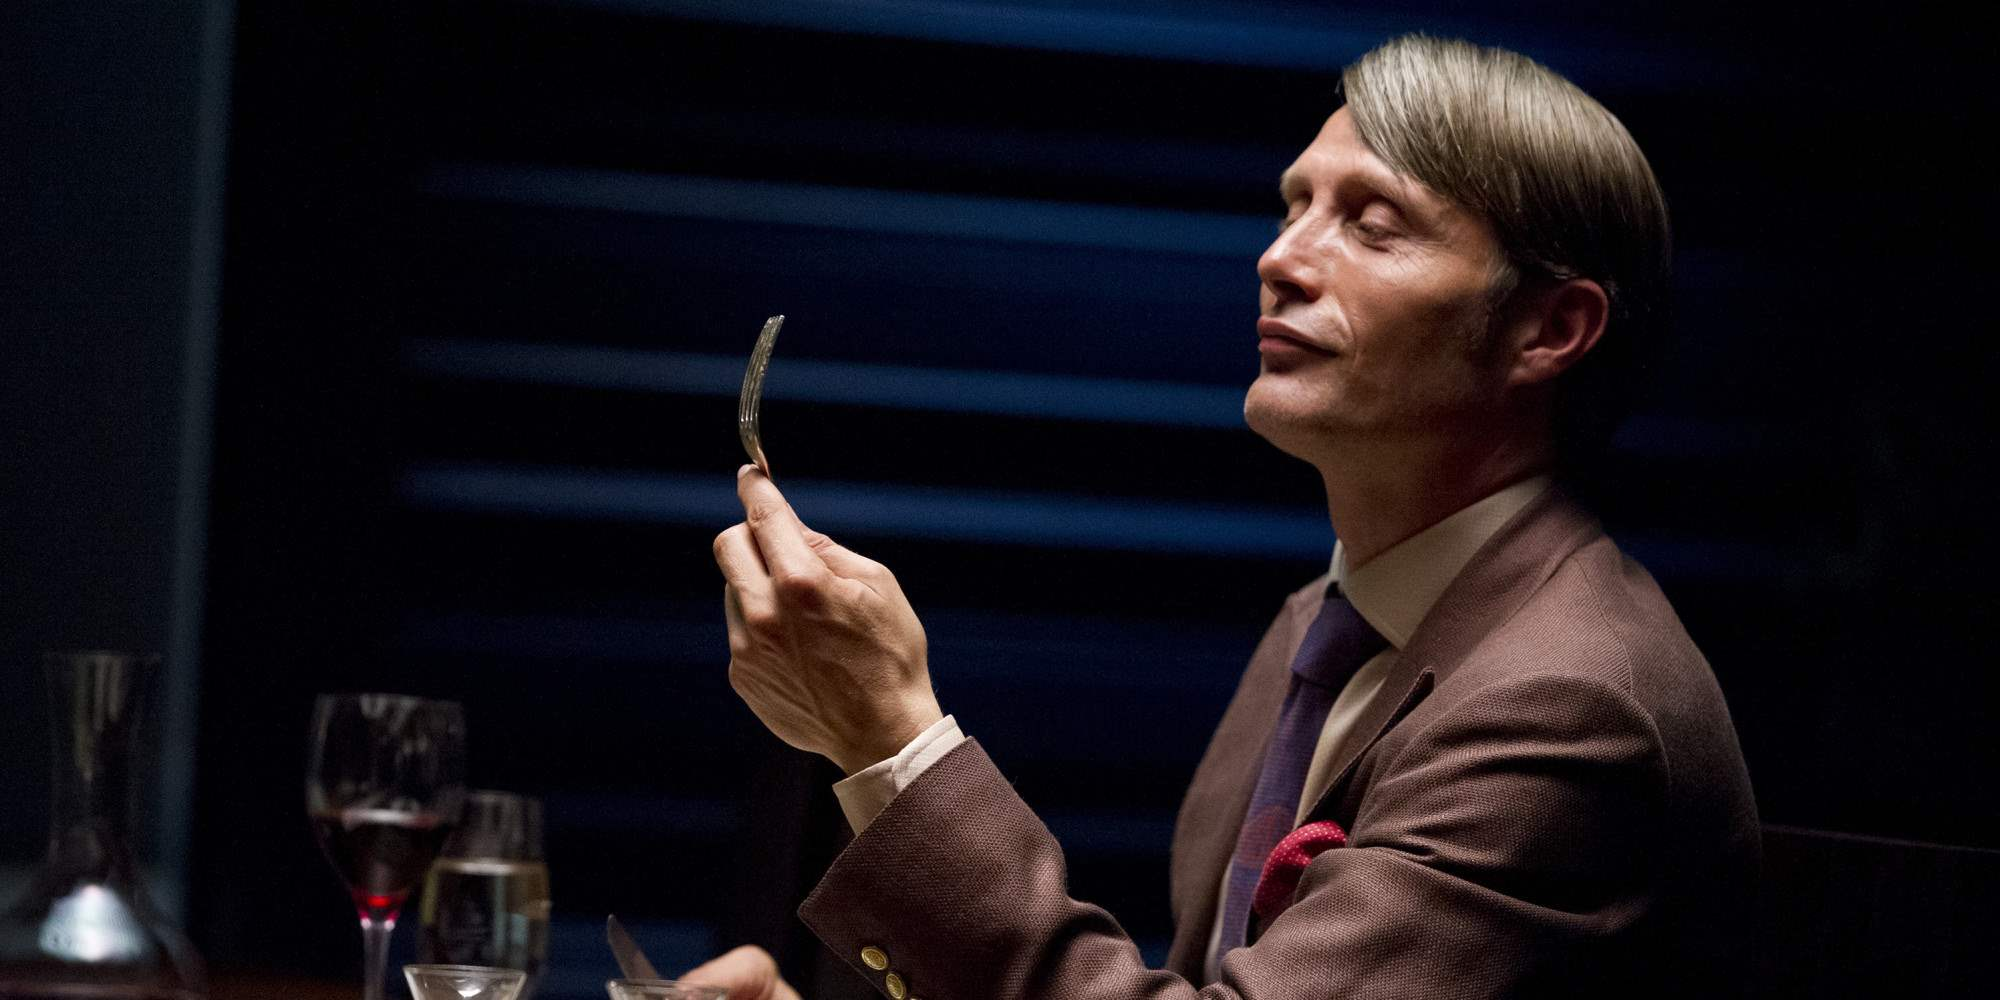 """Dr. Hannibal Lecter at the dinner table in NBC's show """"Hannibal"""""""